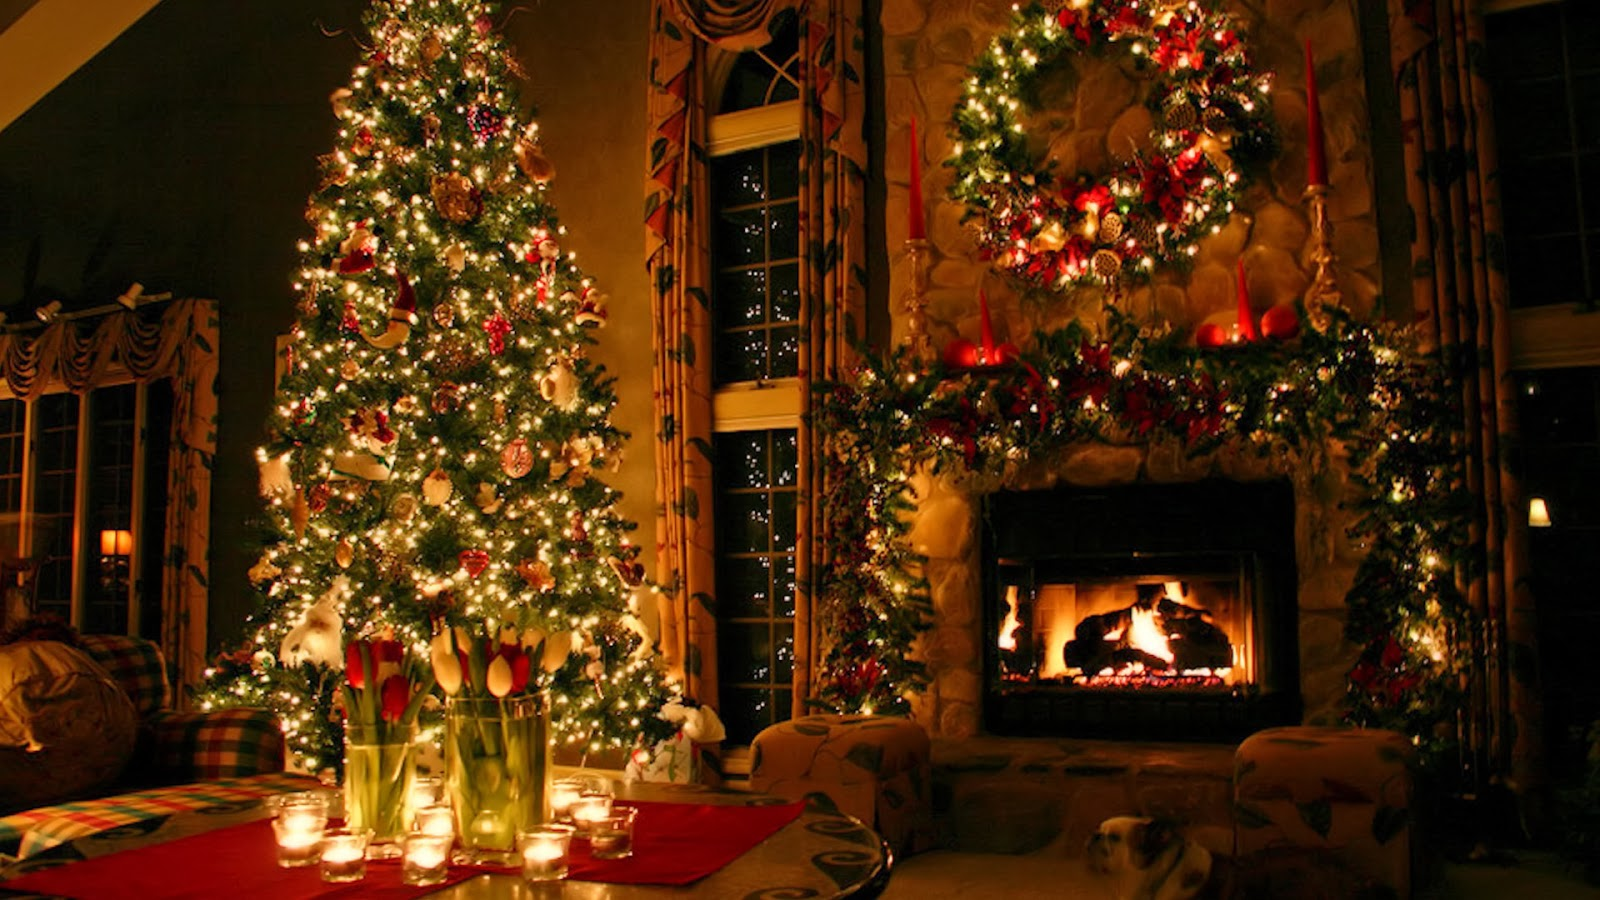 Christmas decorations ideas world top blogger for Christmas home decorations pictures